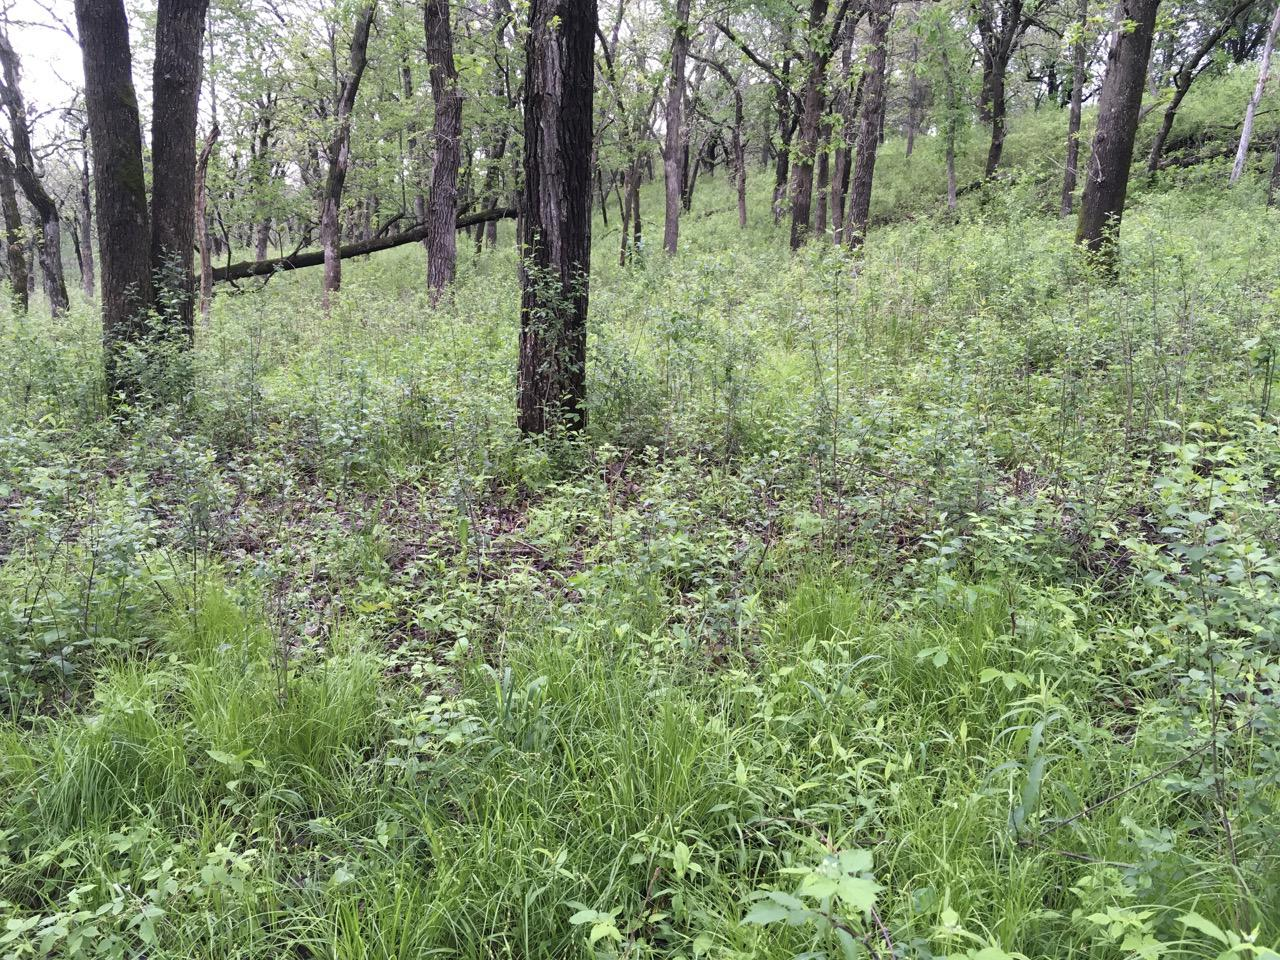 The woodland at the Sand Coulee